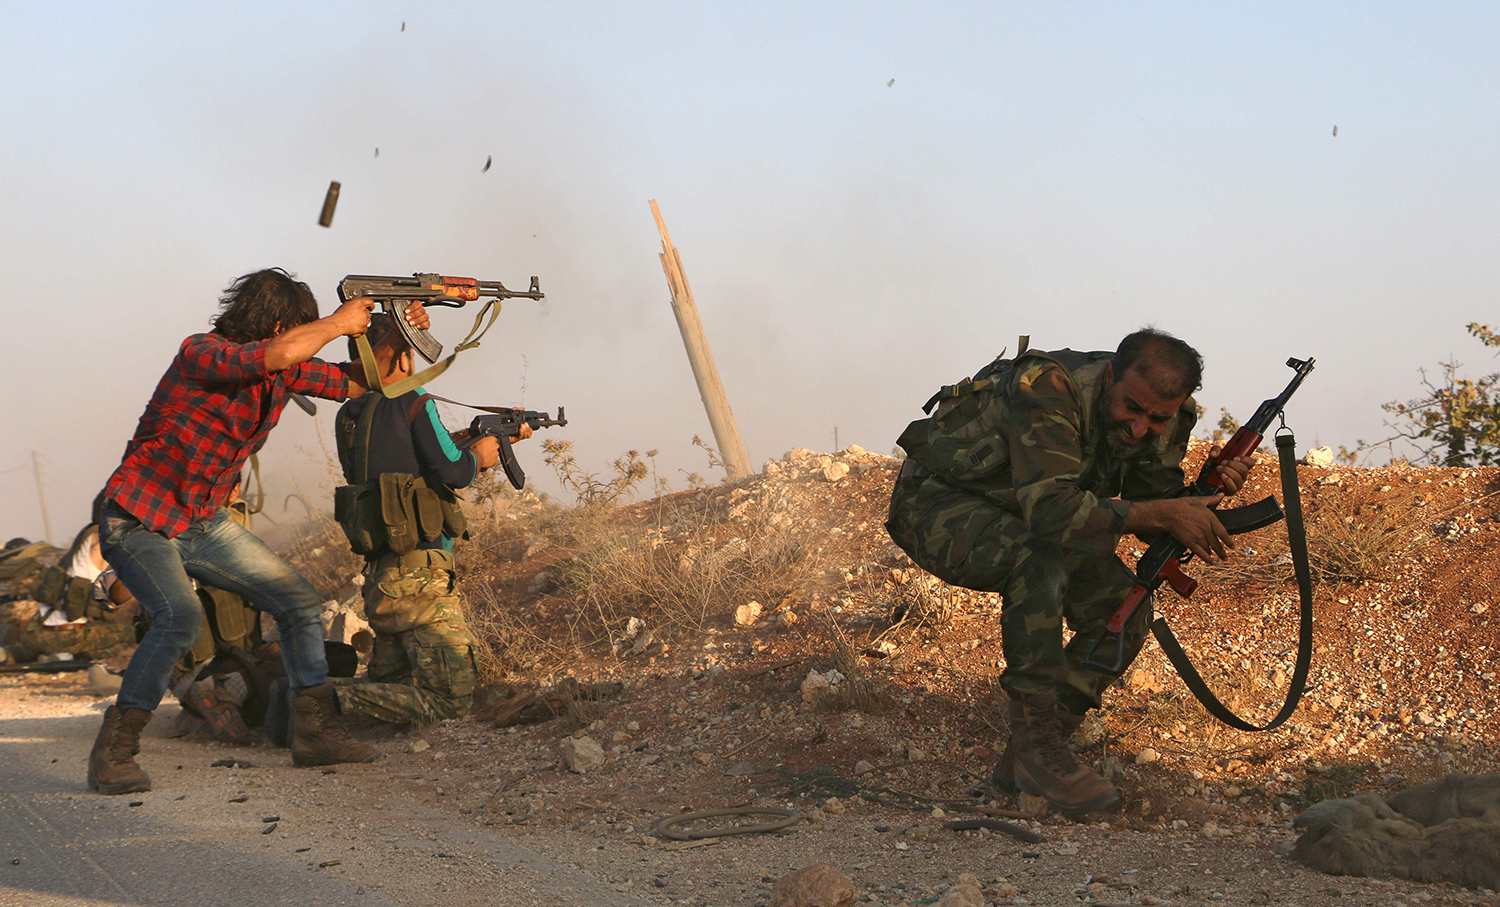 TOPSHOT - Fighters from the Free Syrian Army take part in a battle against the Islamic State (IS) group jihadists in the northern Syrian village of Yahmoul in the Marj Dabiq area north of the embattled city of Aleppo on October 10, 2016. Syria's main opposition group called for foreign allies to supply rebel forces with ground-to-air weapons to counter deadly air raids in Aleppo. / AFP PHOTO / Nazeer al-Khatib / TT / kod 444